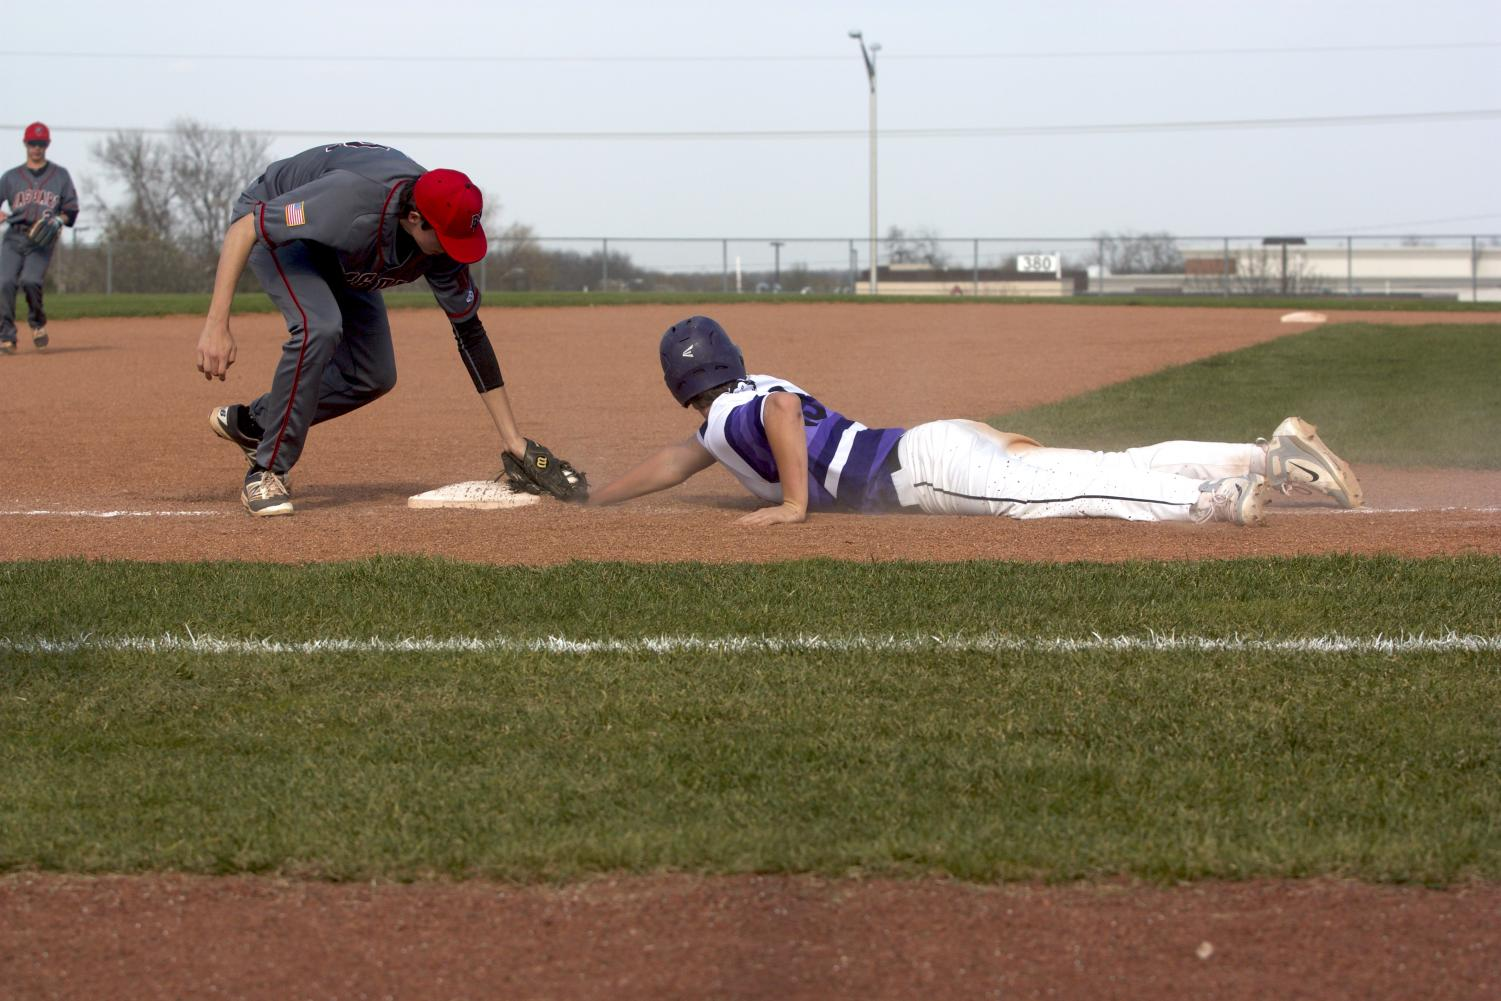 Senior Holden Missey dives back into third base after a Jaguars pickoff attempt in the Huskies matchup with Blue Valley West at the DAC April 24. The Huskies defeated the Jaguars, 10-3.